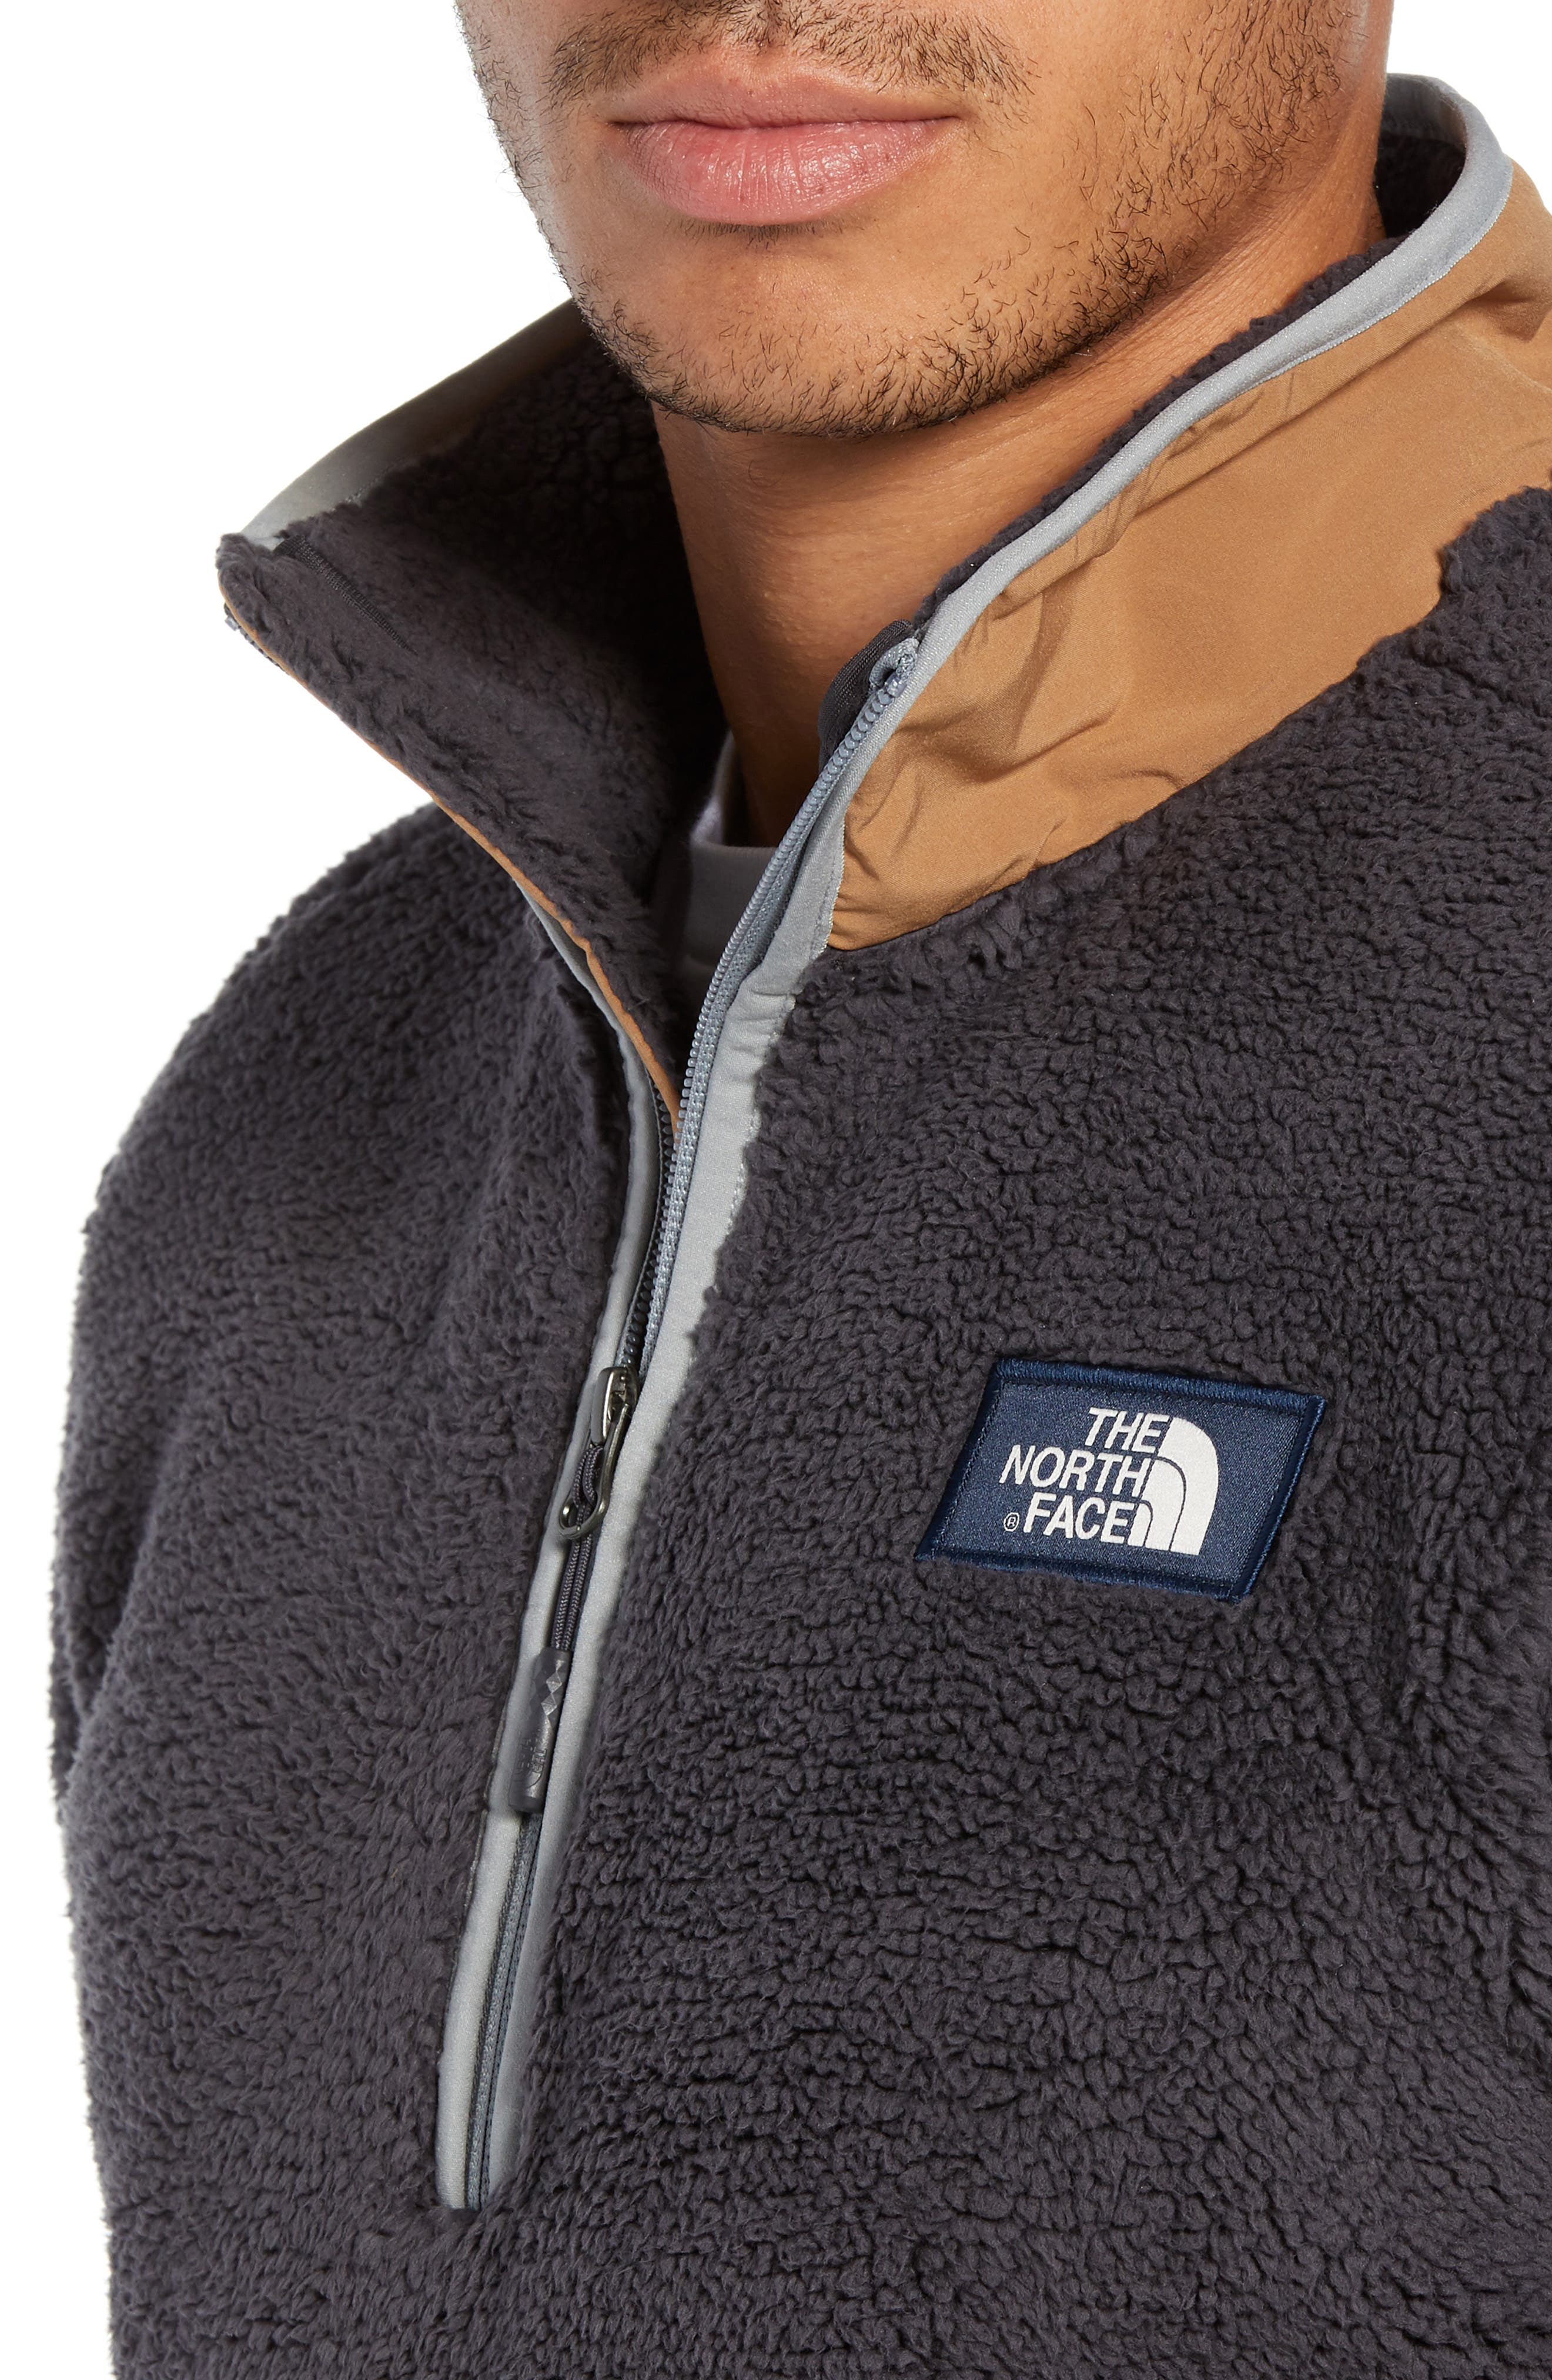 THE NORTH FACE,                             Campshire Pullover Fleece Jacket,                             Alternate thumbnail 5, color,                             001